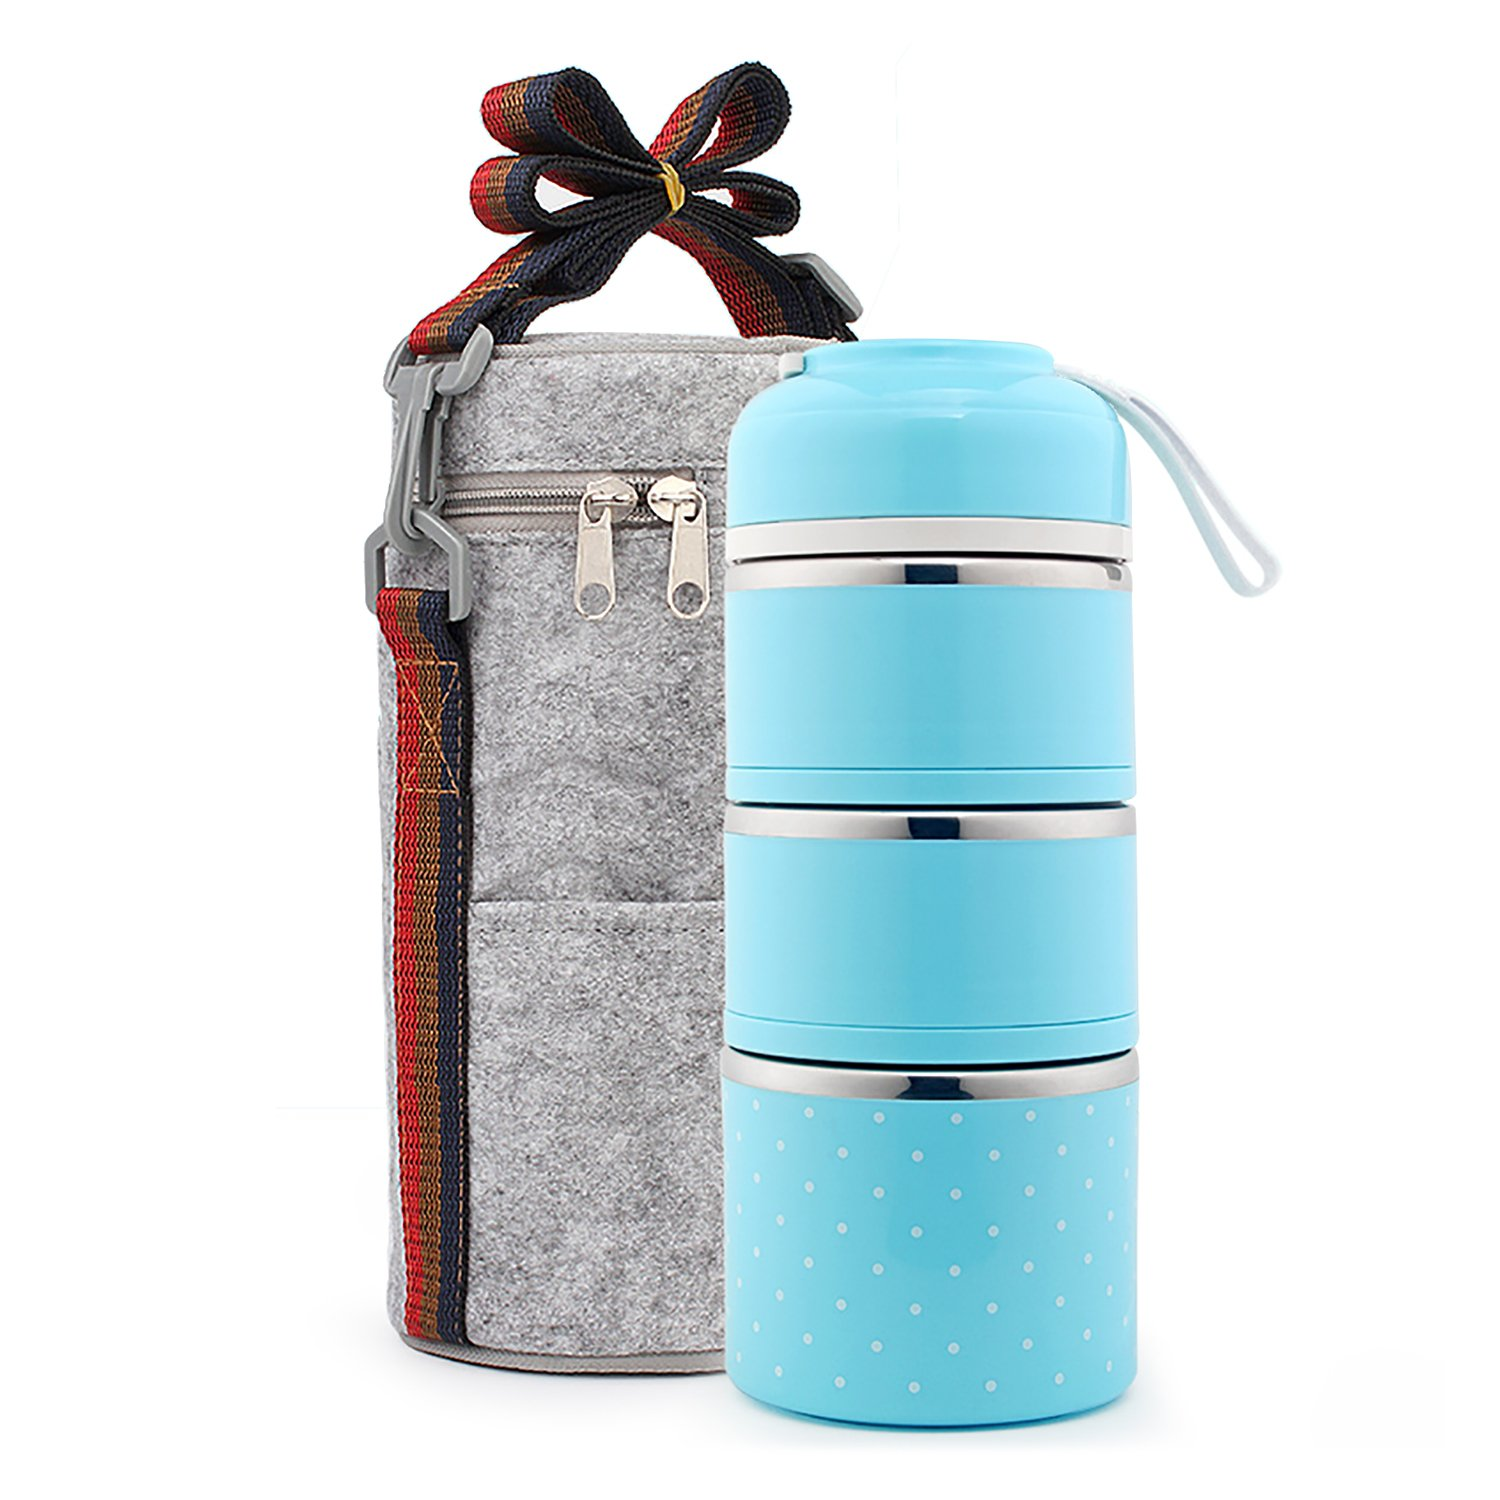 Maiyuansu Bento Lunch Box Stainless Steel Leakproof Food Storage Containers with Insulated Lunch Bag for Adult and Office (Blue)